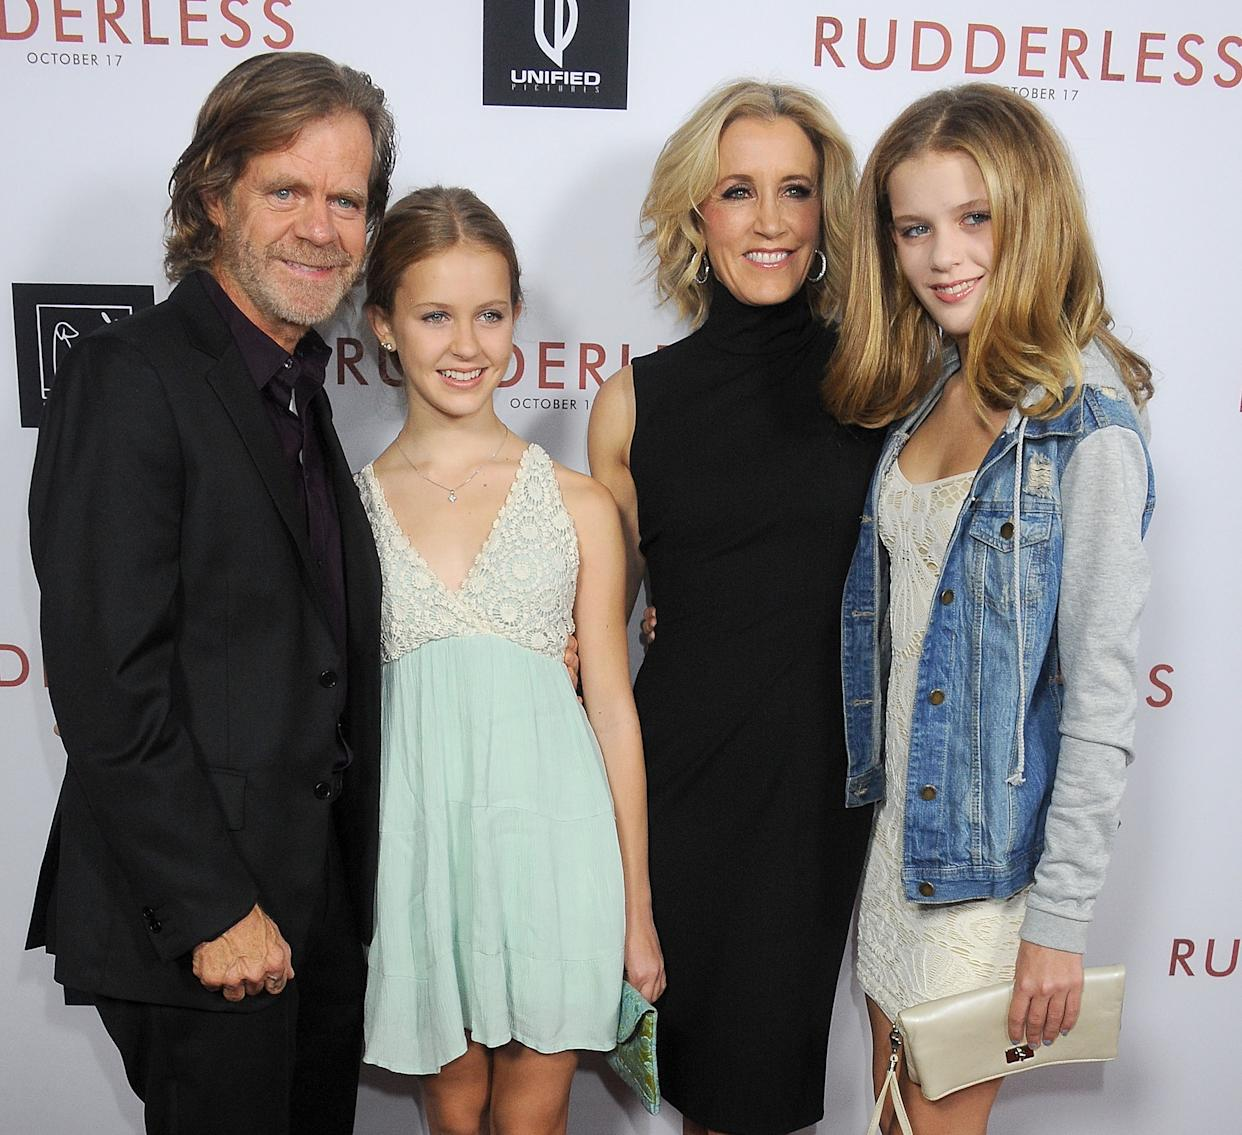 """LOS ANGELES, CA - OCTOBER 07: William H. Macy, Georgia Grace Macy, Felicity Huffman and Sophia Grace Macy arrive at the Los Angeles VIP Screening of """"Rudderless"""" at the Vista Theatre on October 7, 2014 in Los Angeles, California.  (Photo by Gregg DeGuire/WireImage)"""